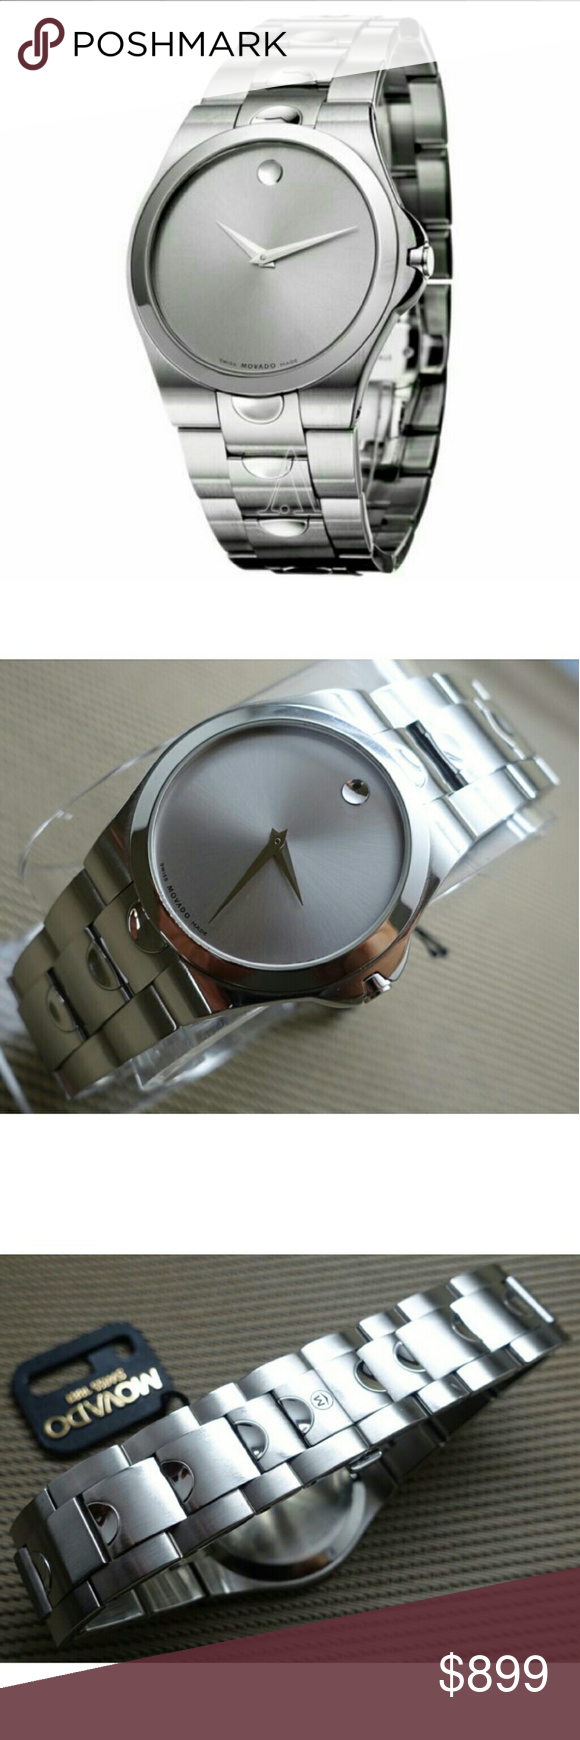 watches movado i luno tradesy steel mens watch stainless